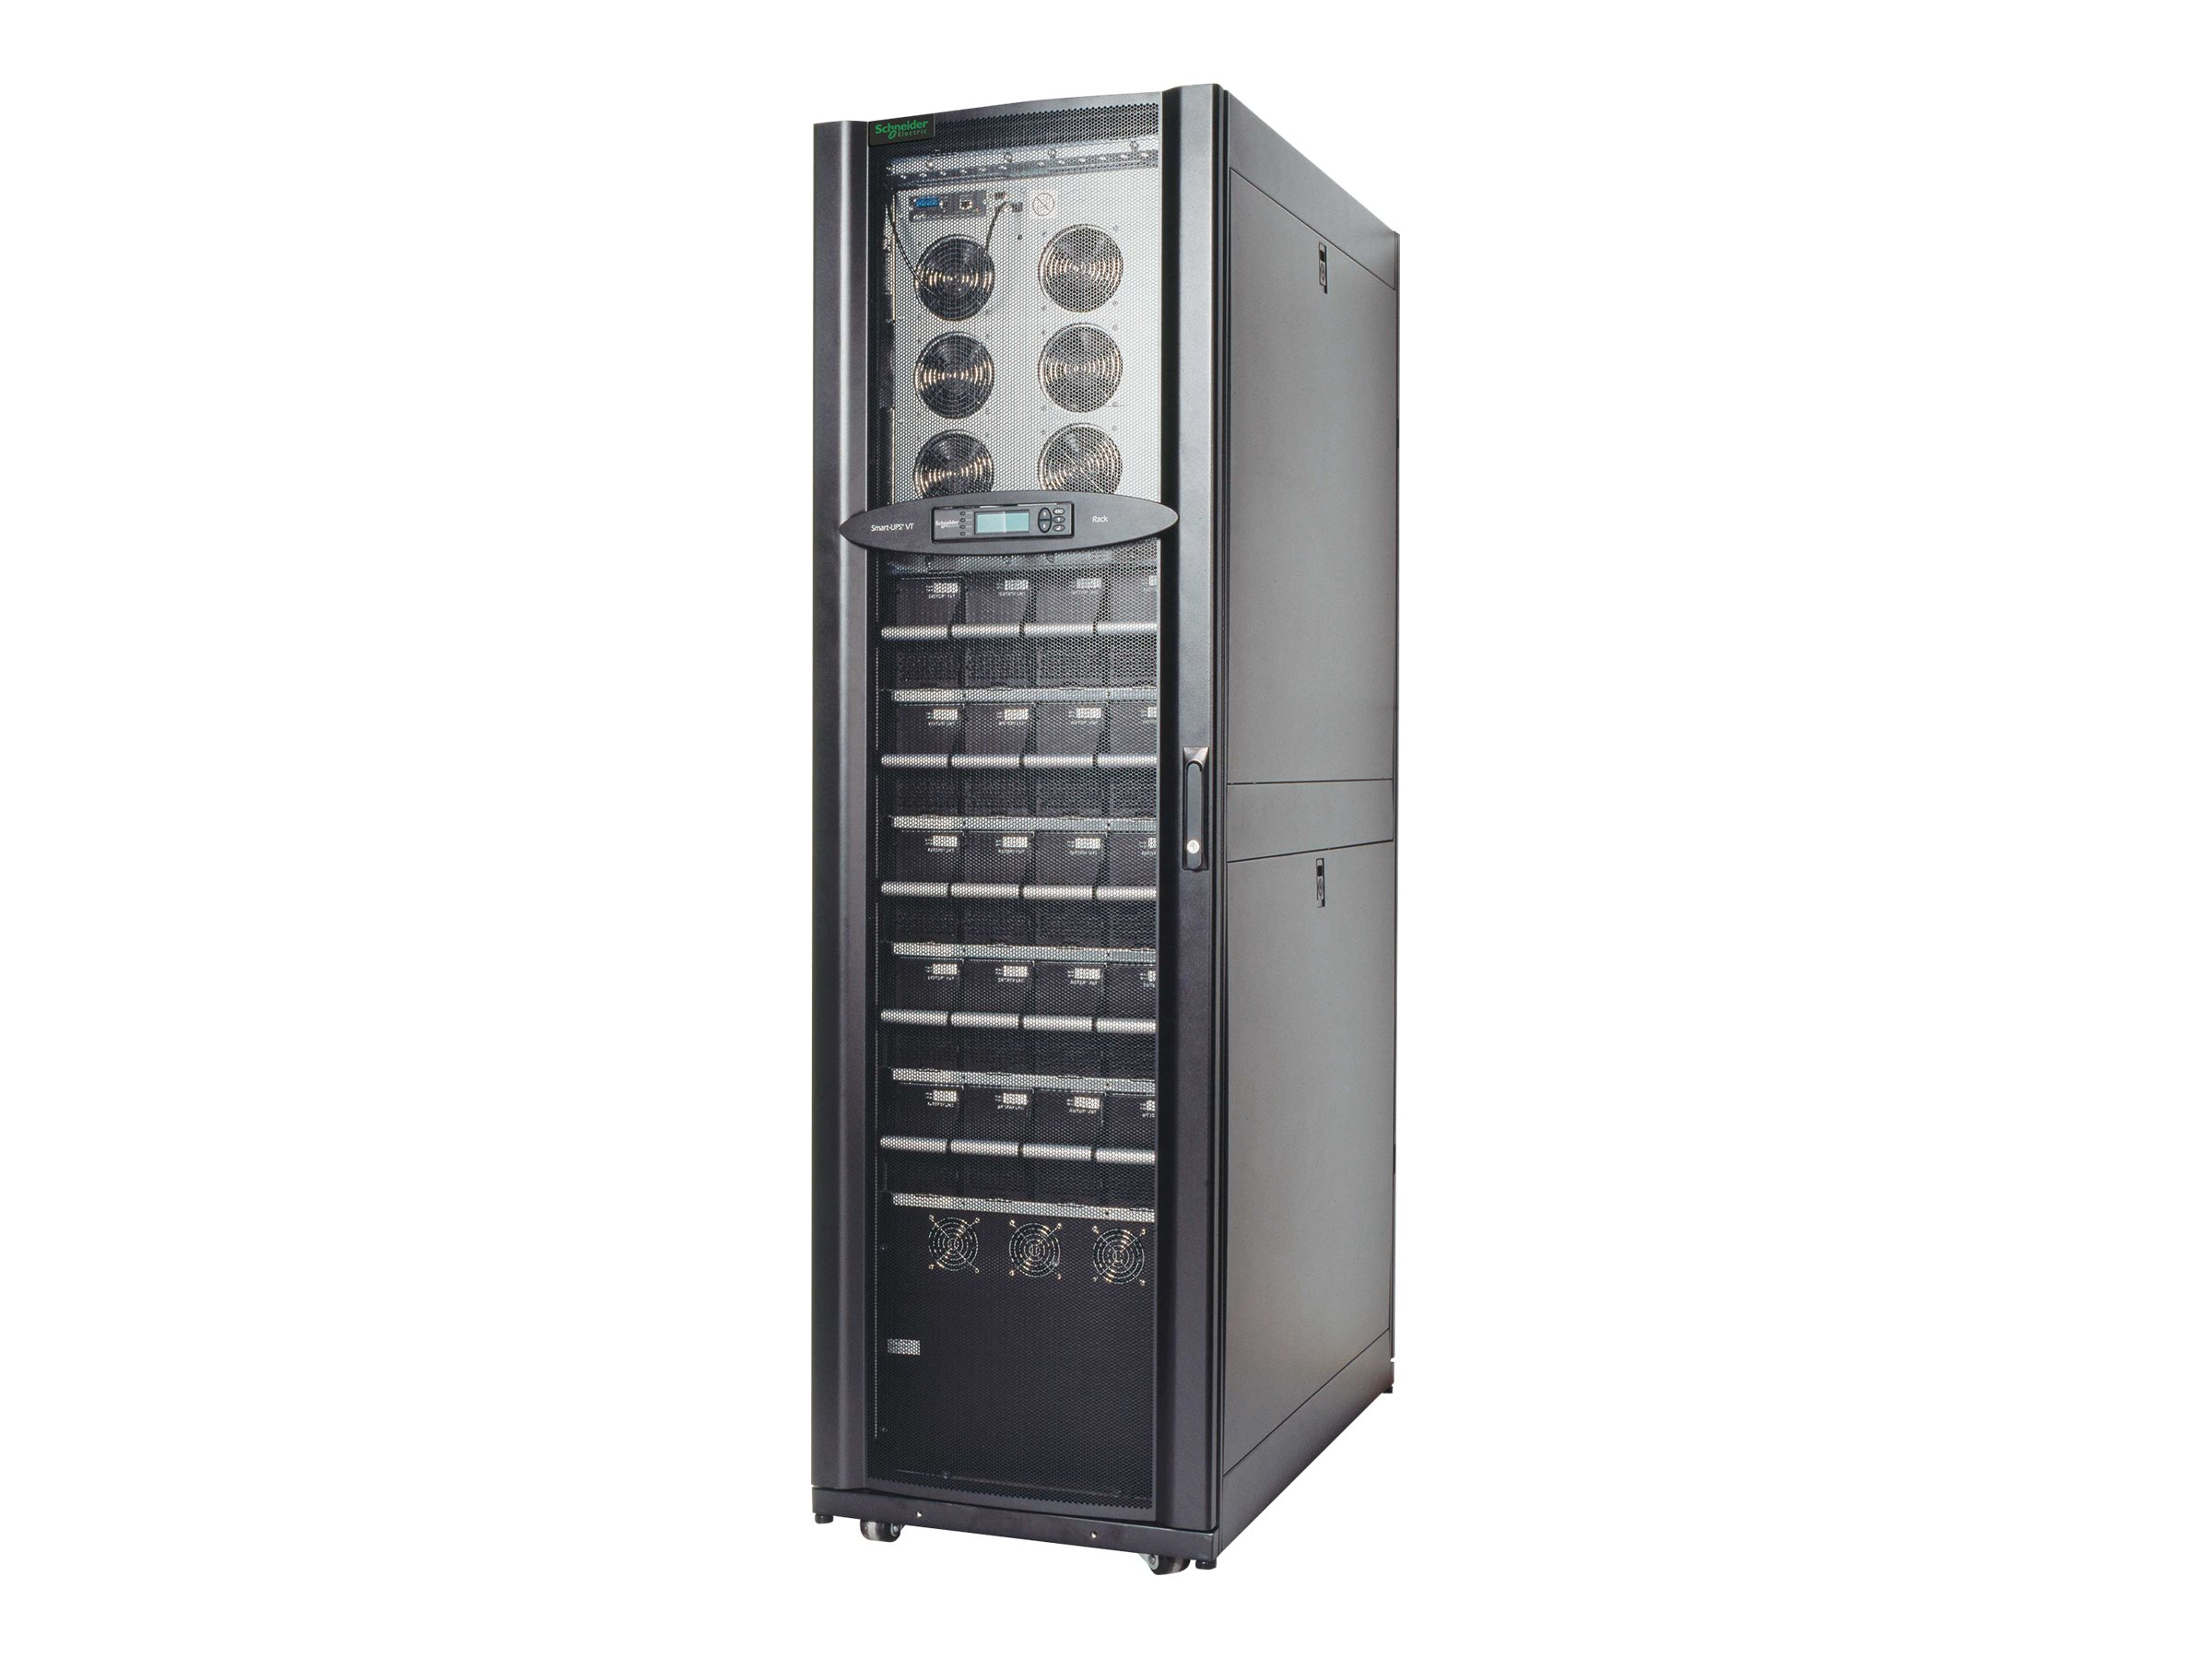 APC Smart-UPS VT 30kVA with 3 Battery Modules Expandable to 5 - power array - 24 kW - 30000 VA